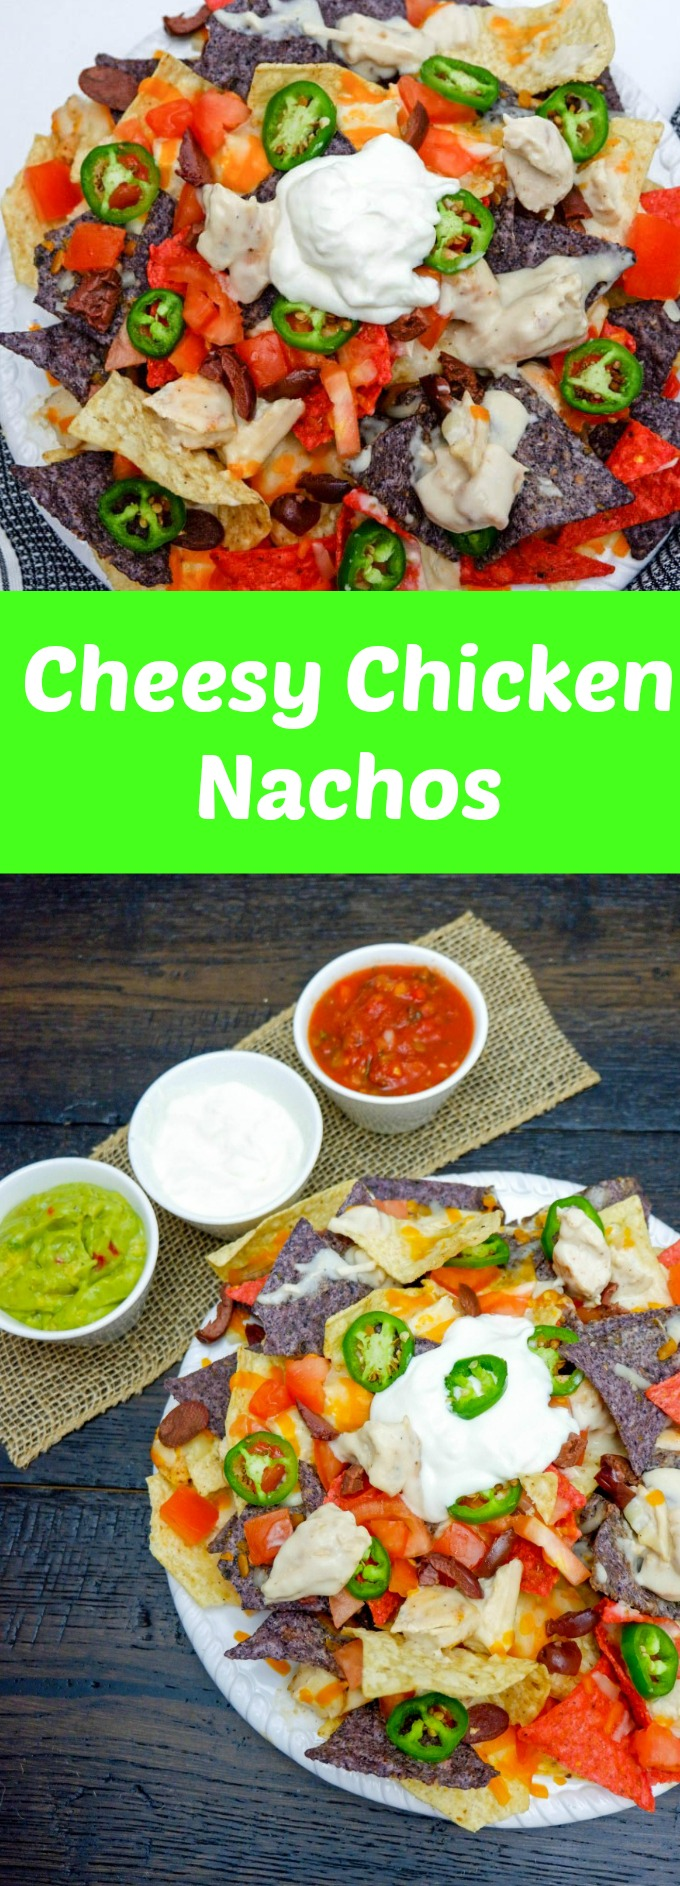 Cheesy Chicken Nachos